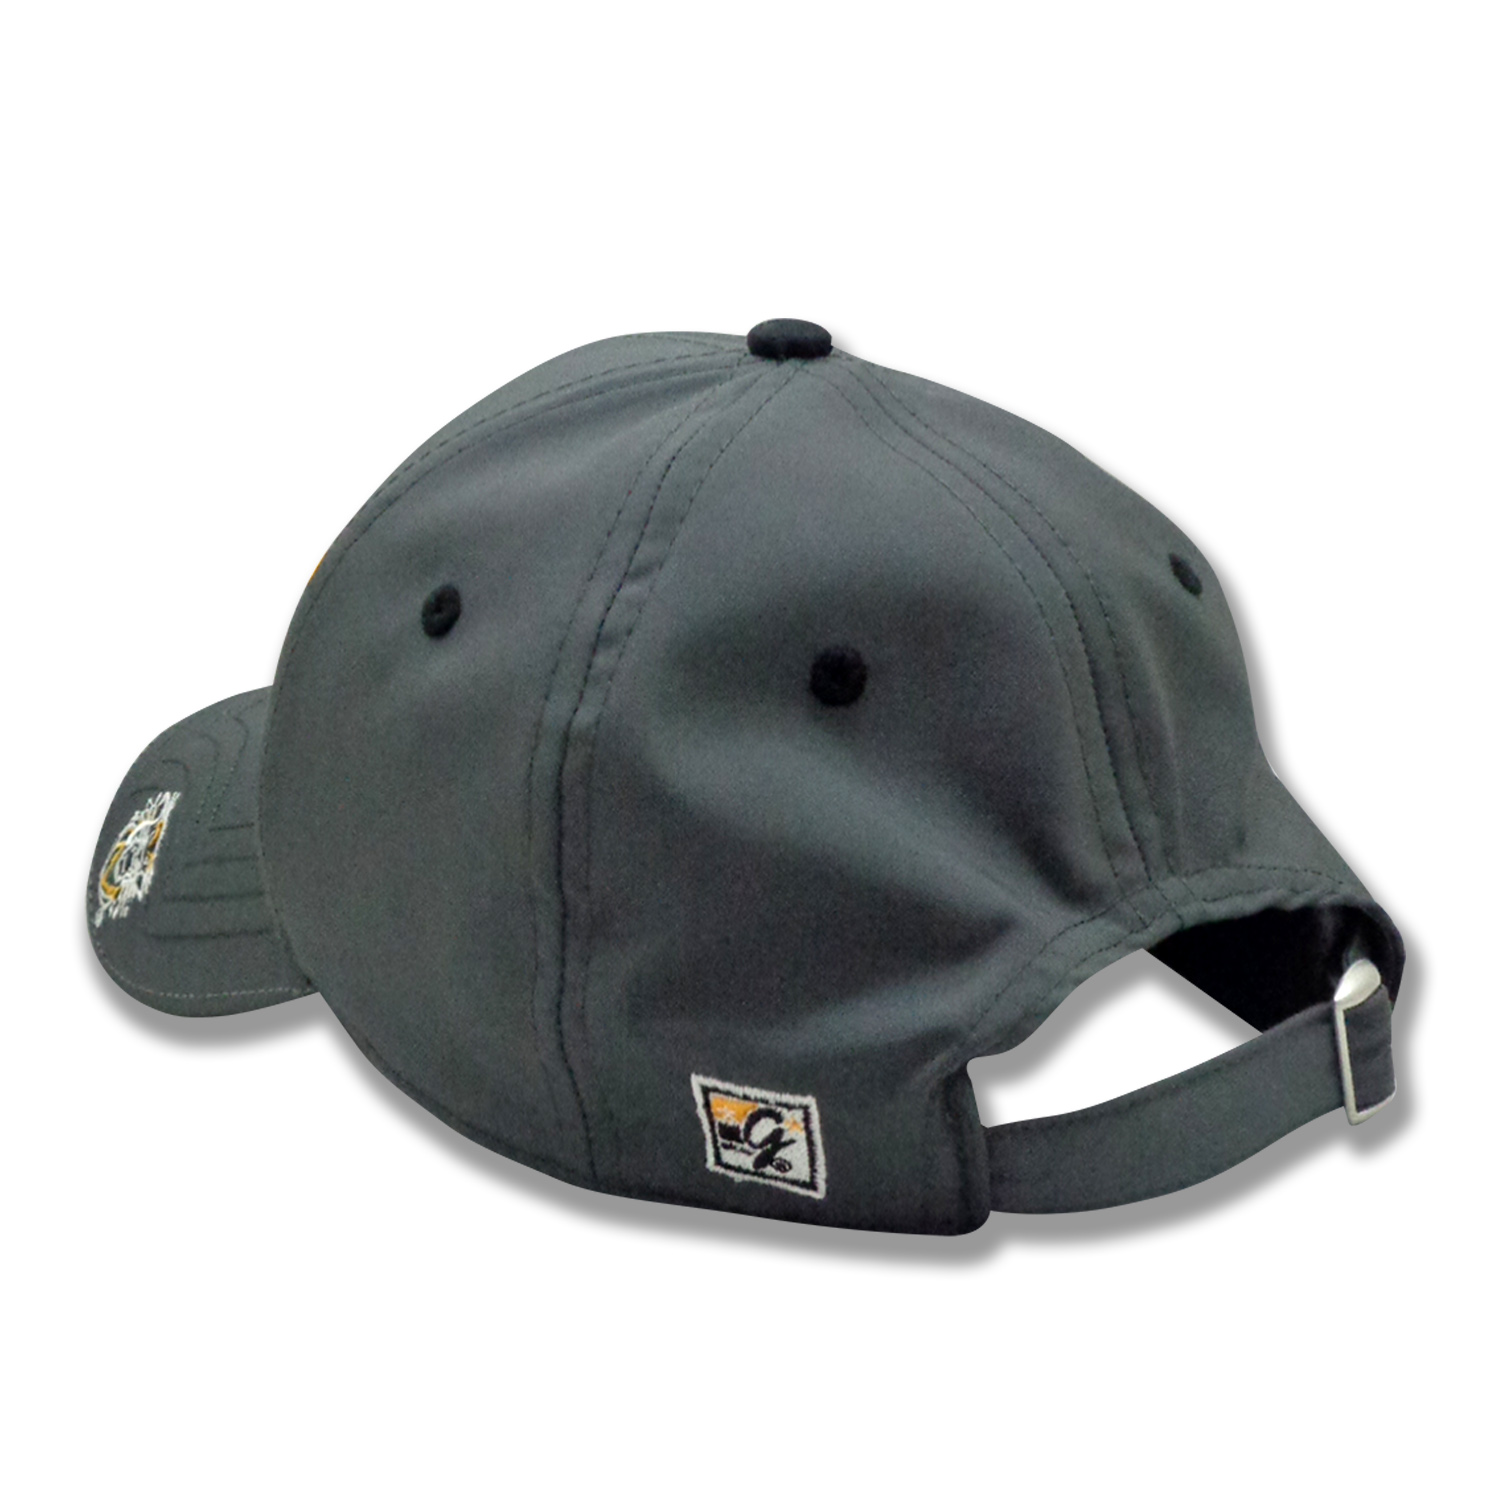 Image for the FHSU Game Changer Low Profile Hat, Slide Buckle Closure, Graphite, The Game product